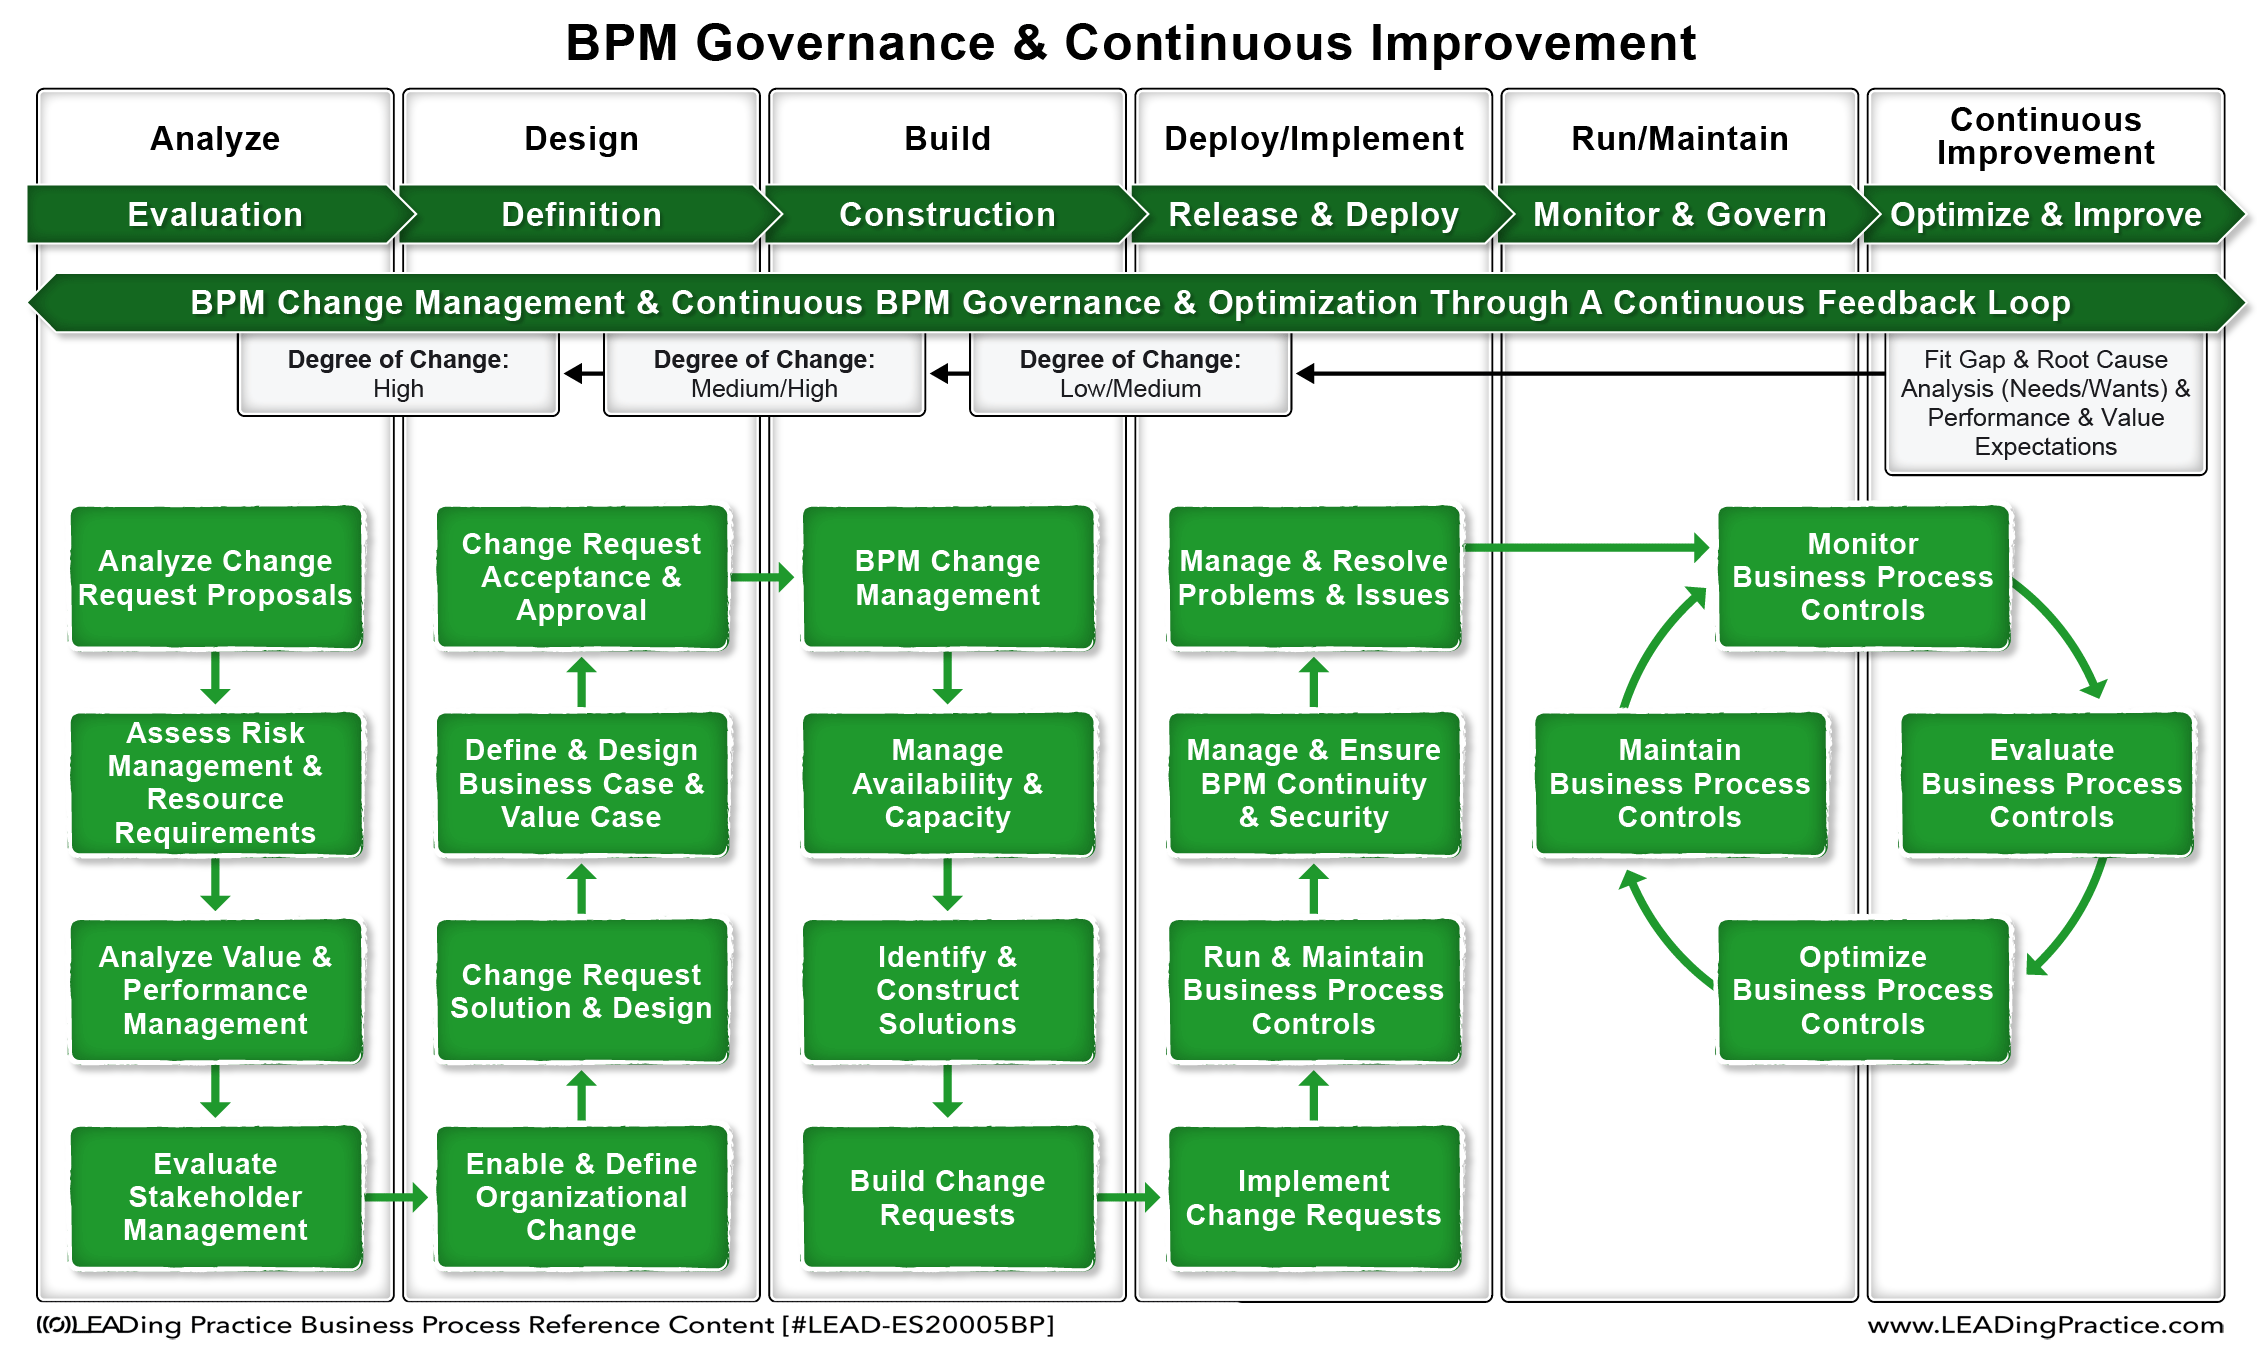 Bpm handbook business process management governance the bpm governance continuous improvement model wajeb Gallery